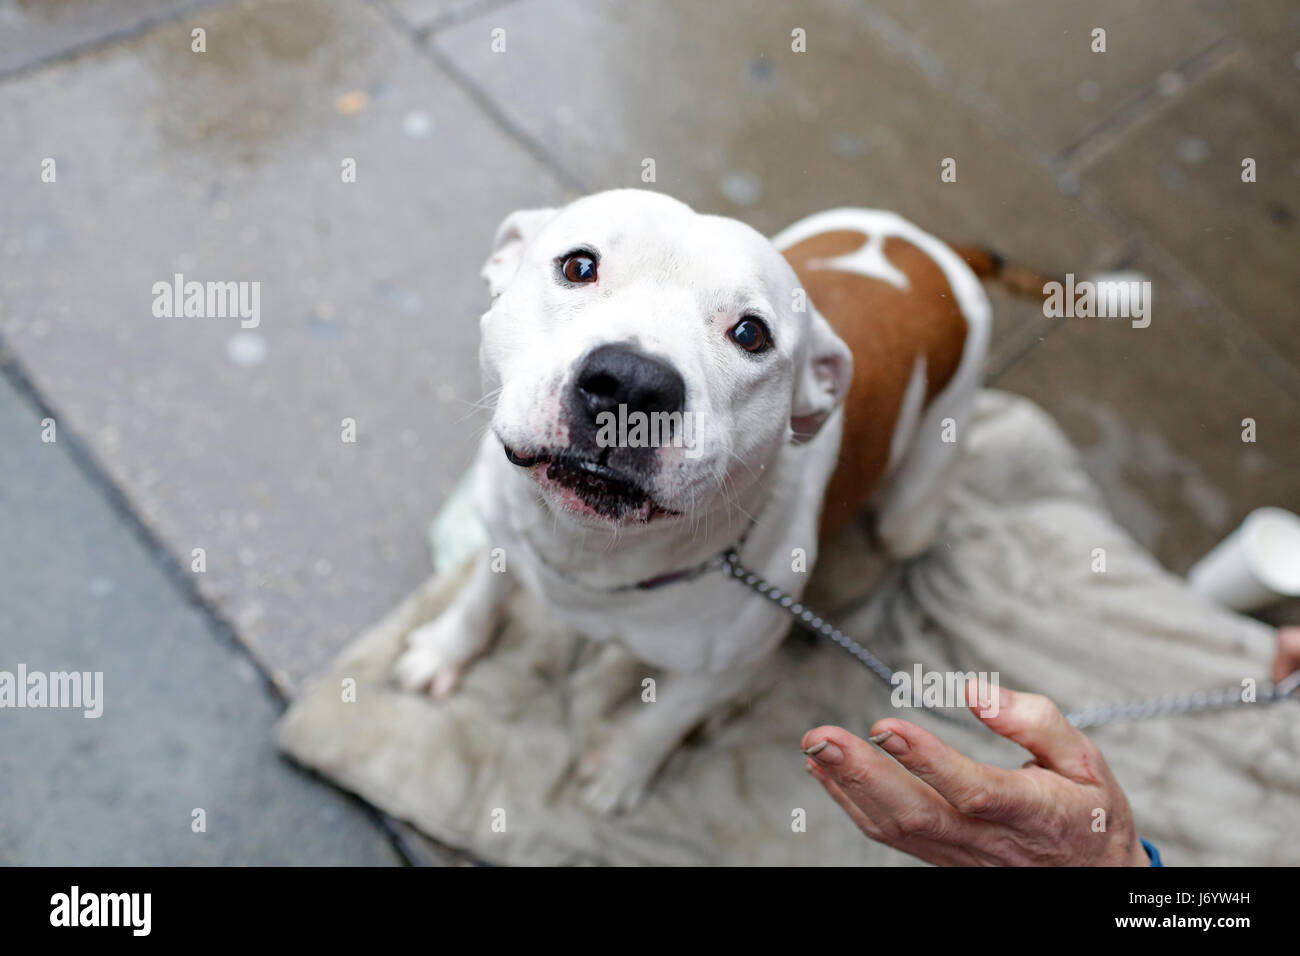 Homeless persons dog - Stock Image